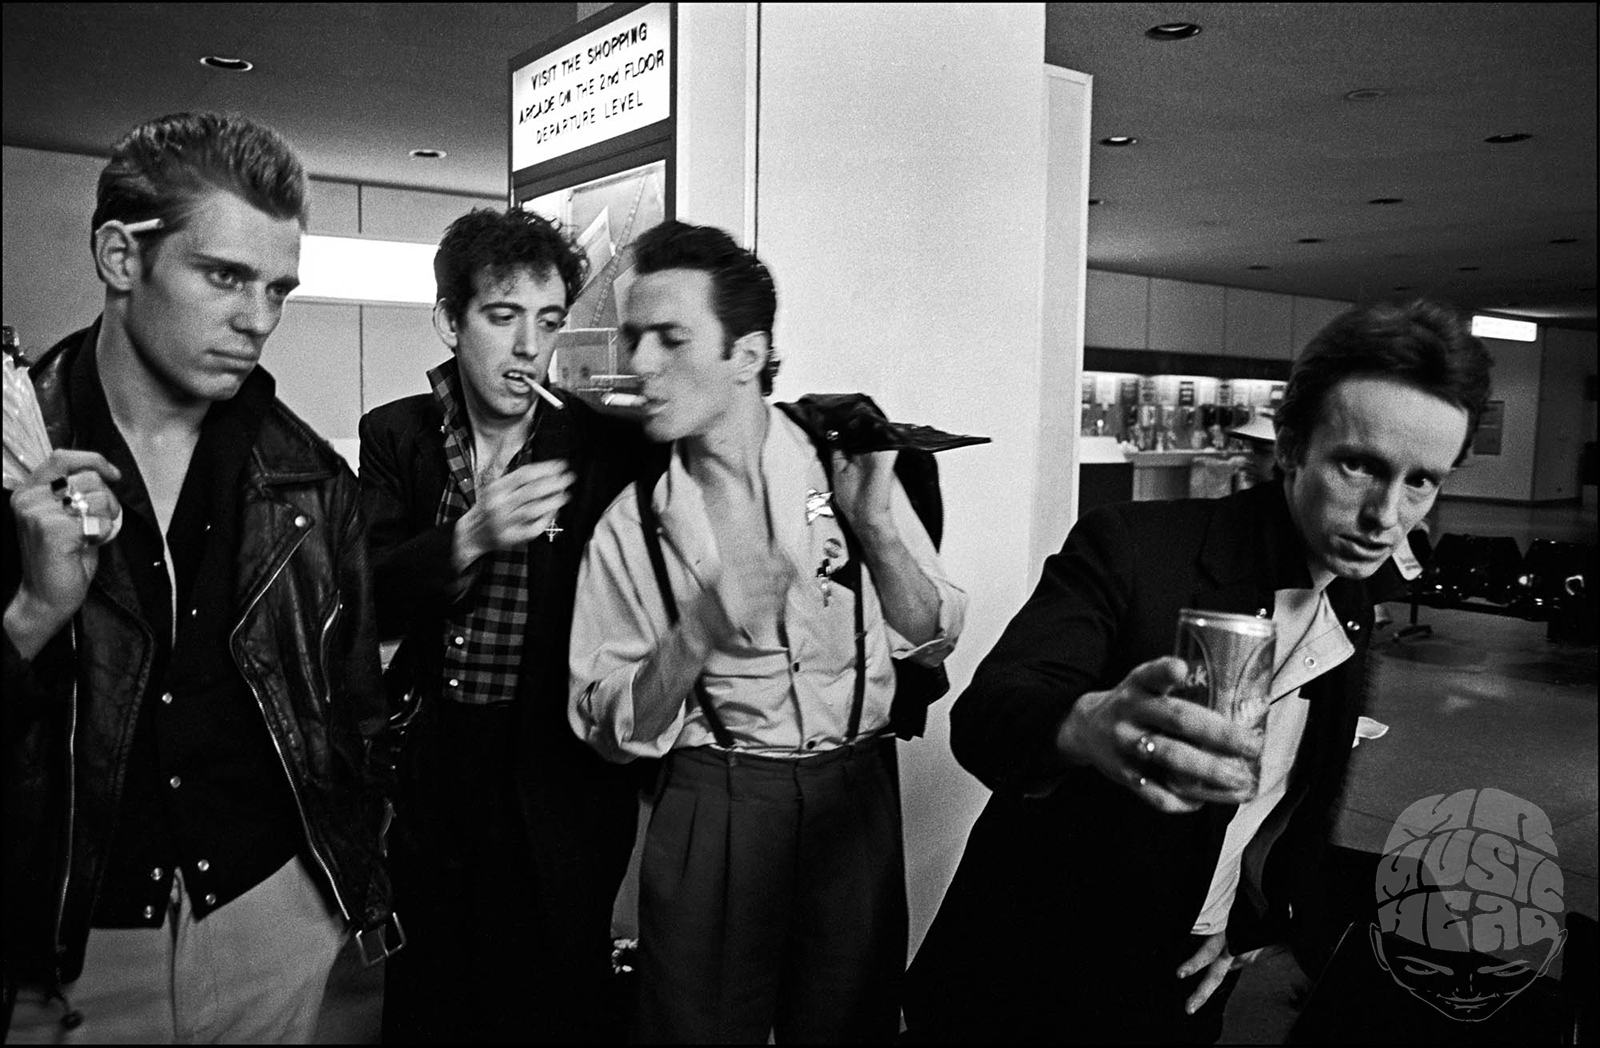 allan tannenbaum_The Clash_JFK.jpg